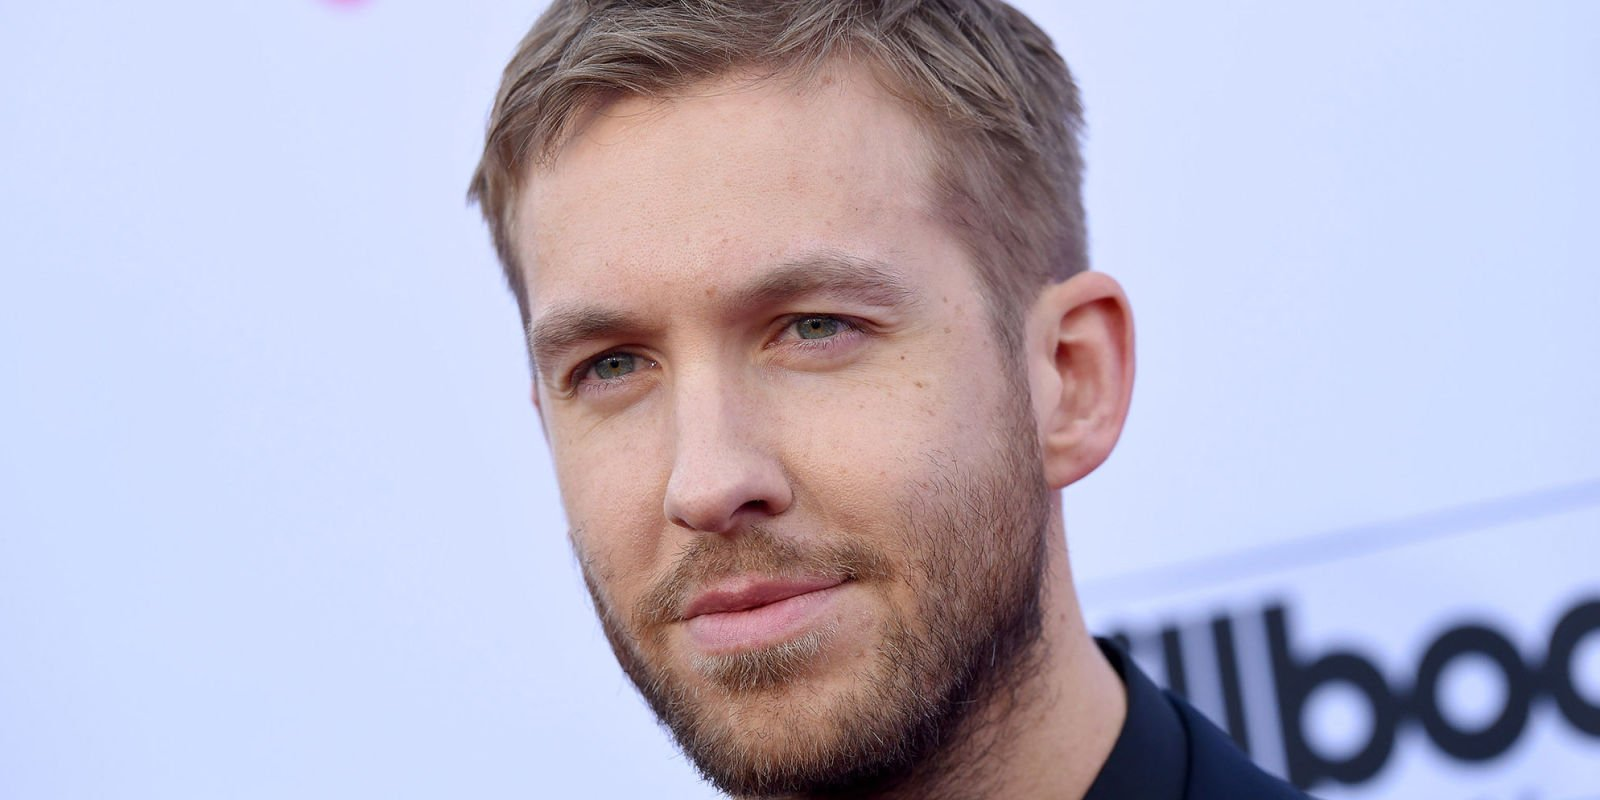 Calvin Harris Is Reportedly Done with Dating Famous People https://t.co/p6NTe0KpTn https://t.co/pEVxlAkxVk